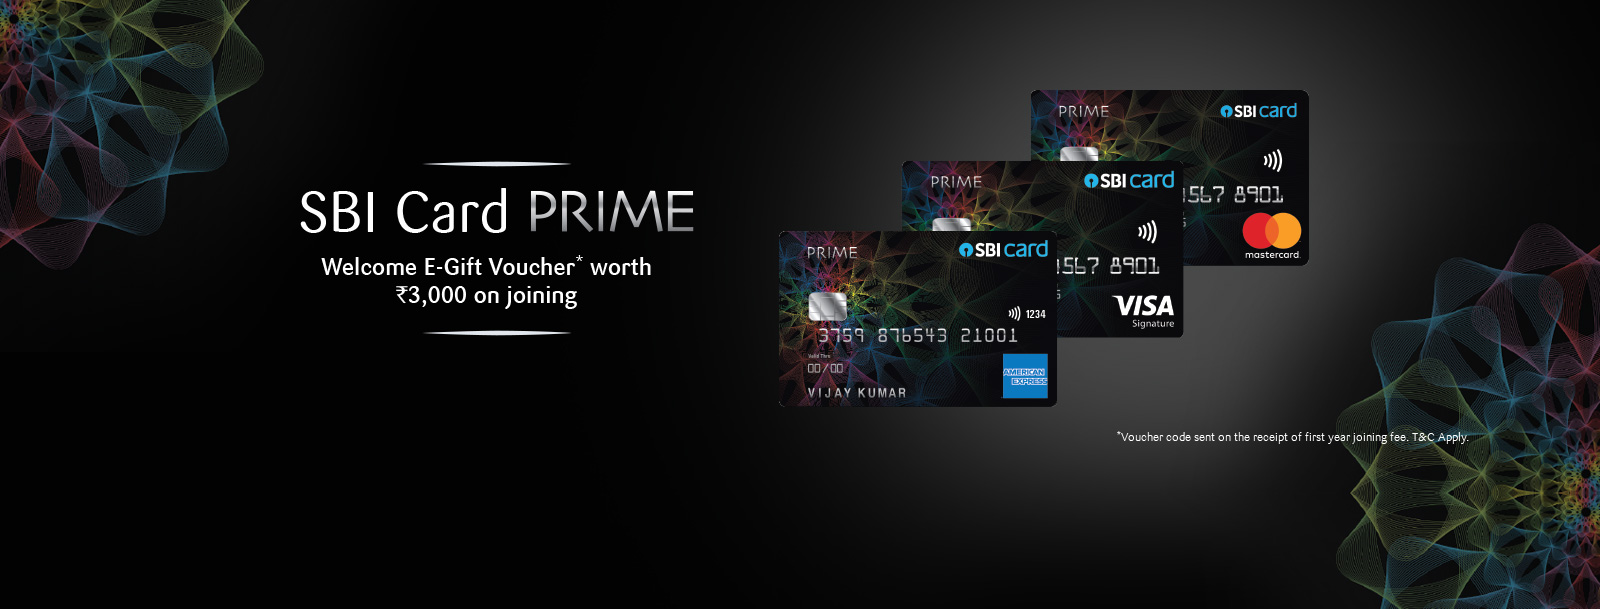 SBI Prime Credit Card